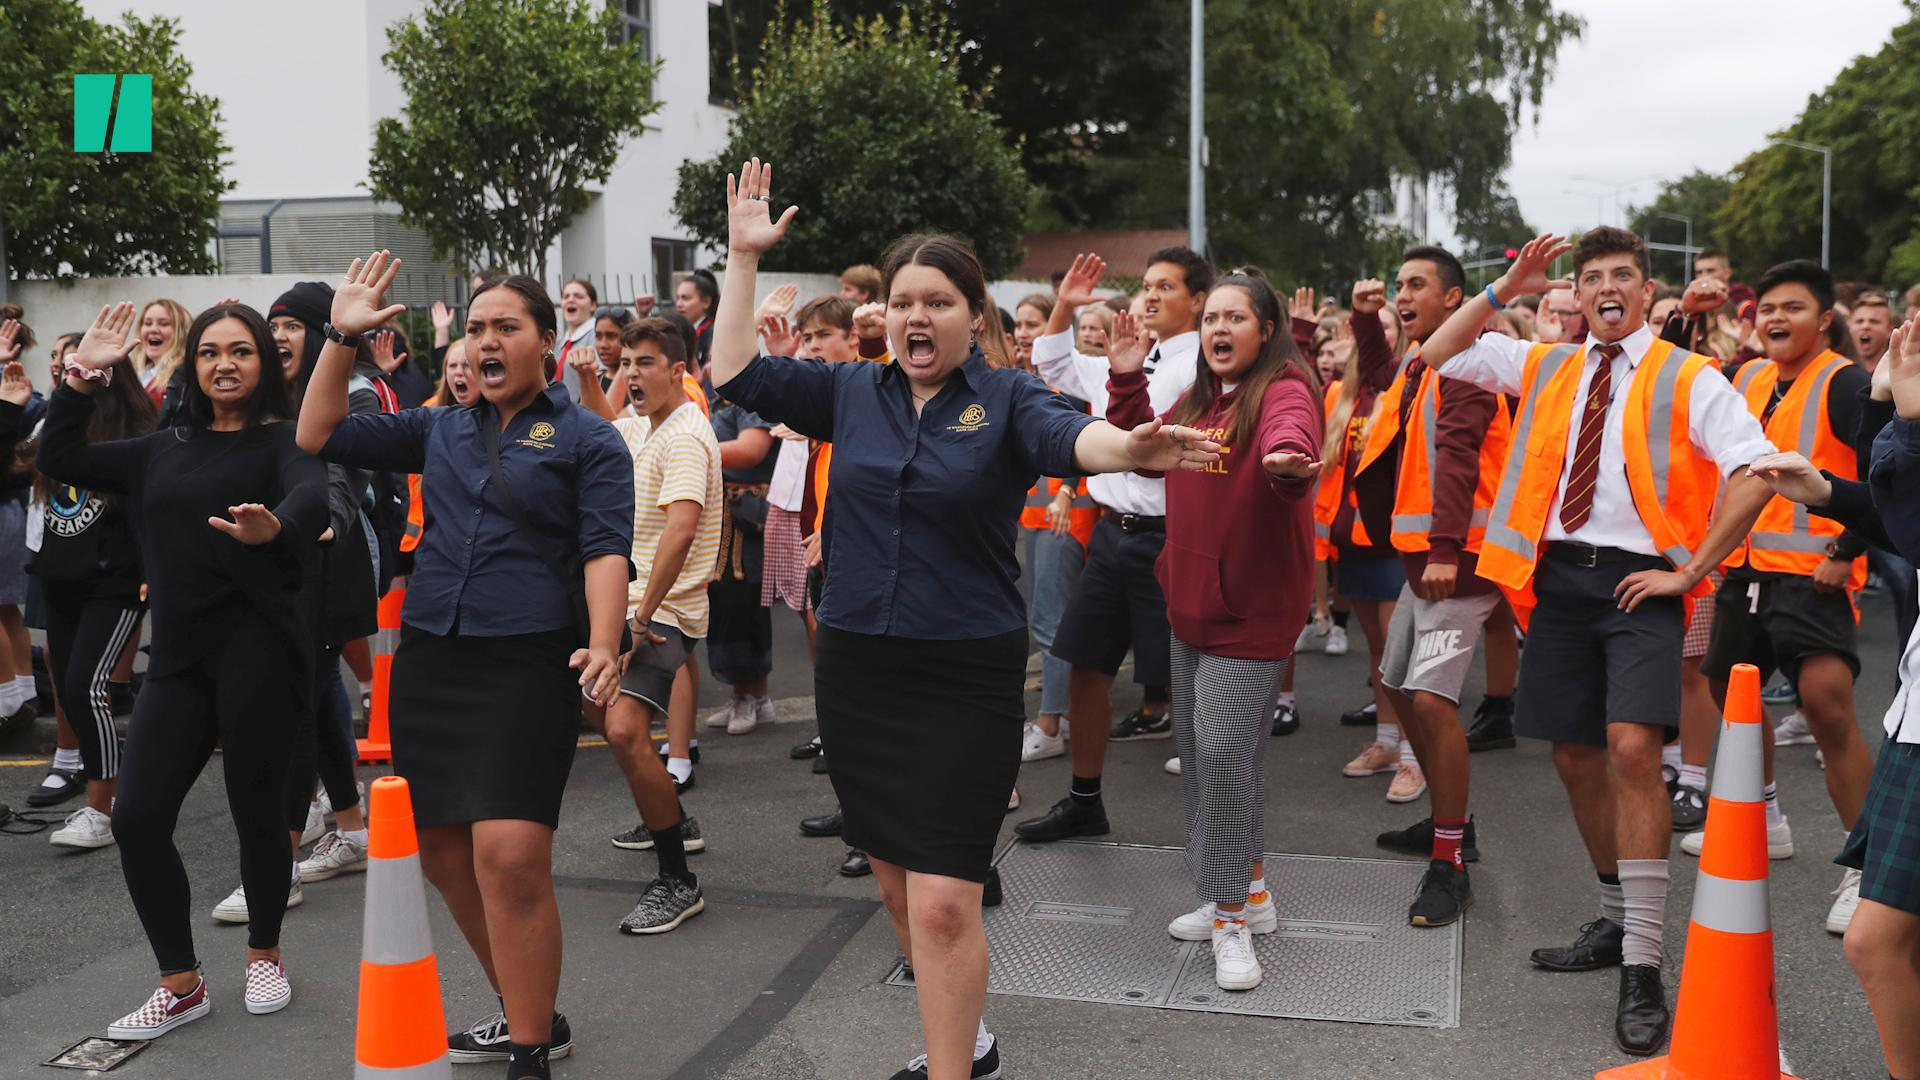 Christchurch Students Perform Haka Dance To Honor New Zealand Shooting Victims